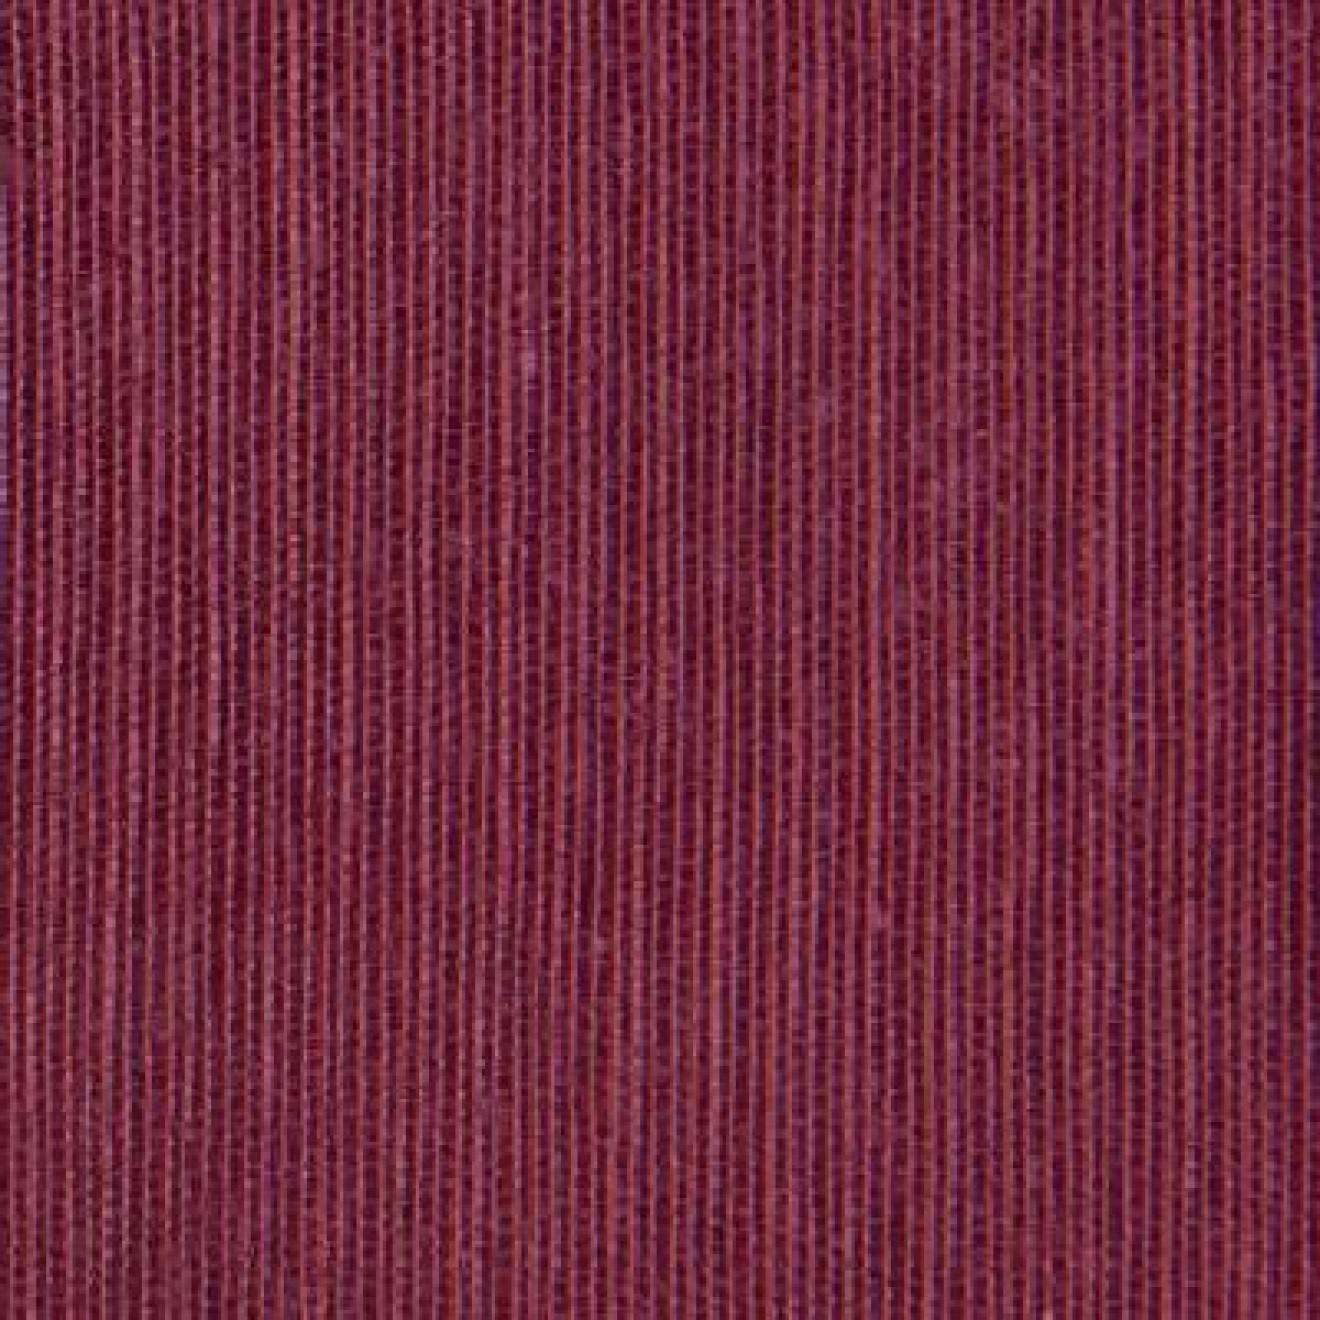 Rolle - Acrylstoff Loneta Color 134